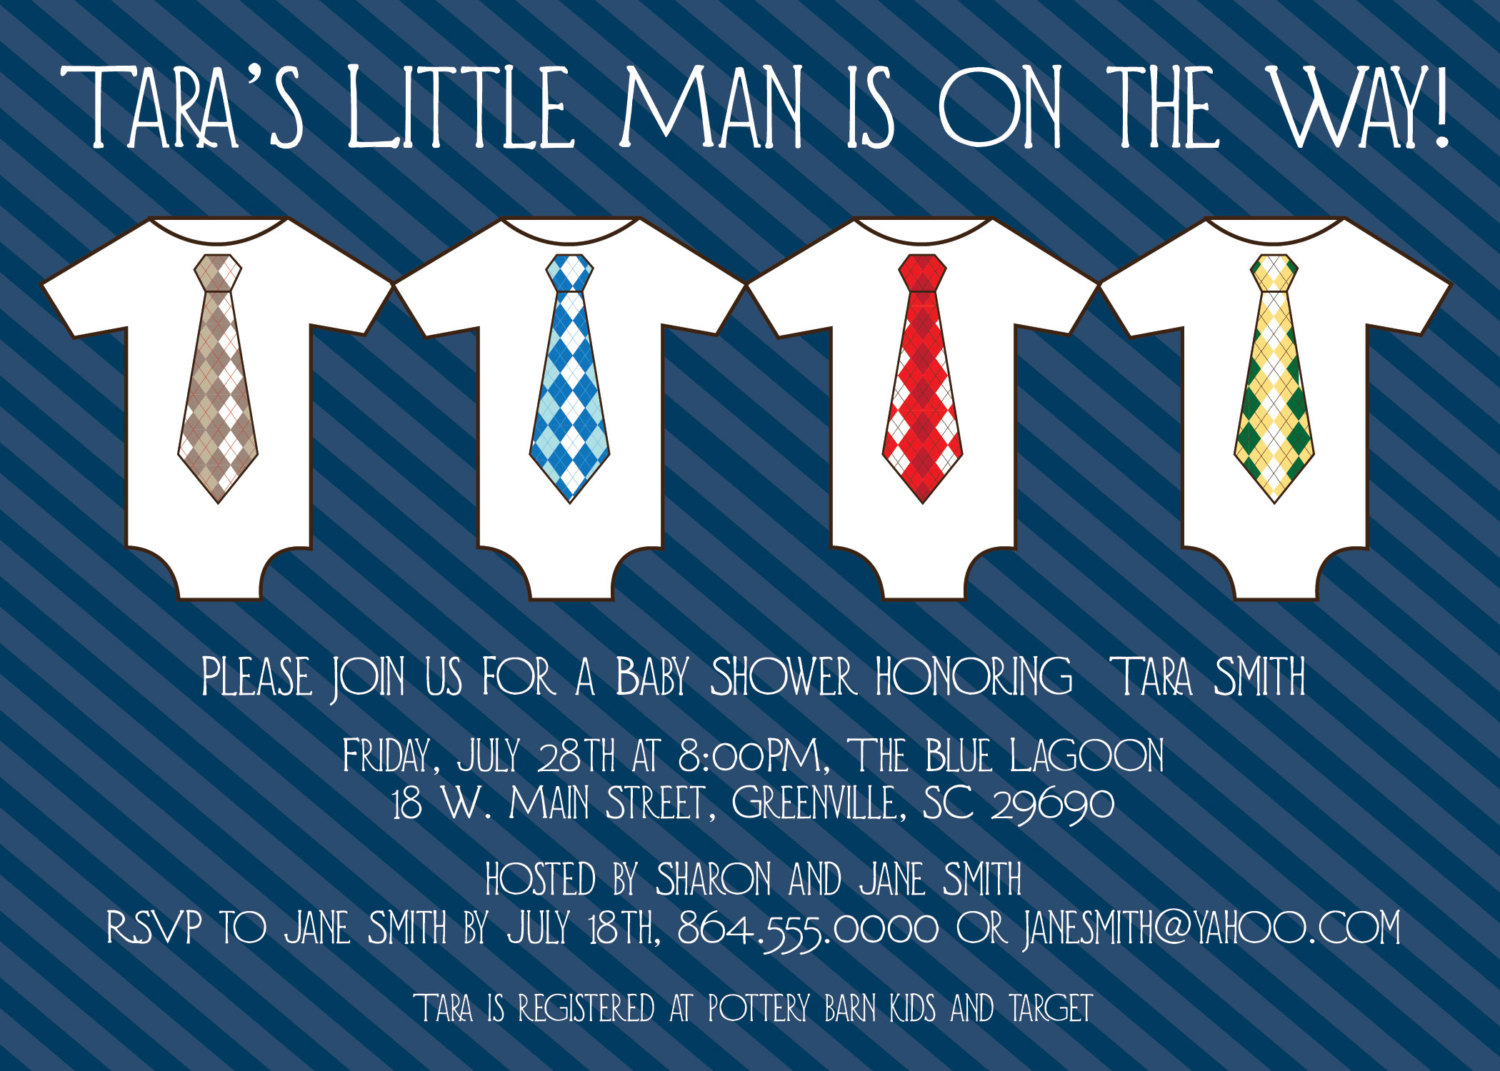 Baby Shower Invitations, Little Man, Little Guy, Manly, Macho, Onesies And